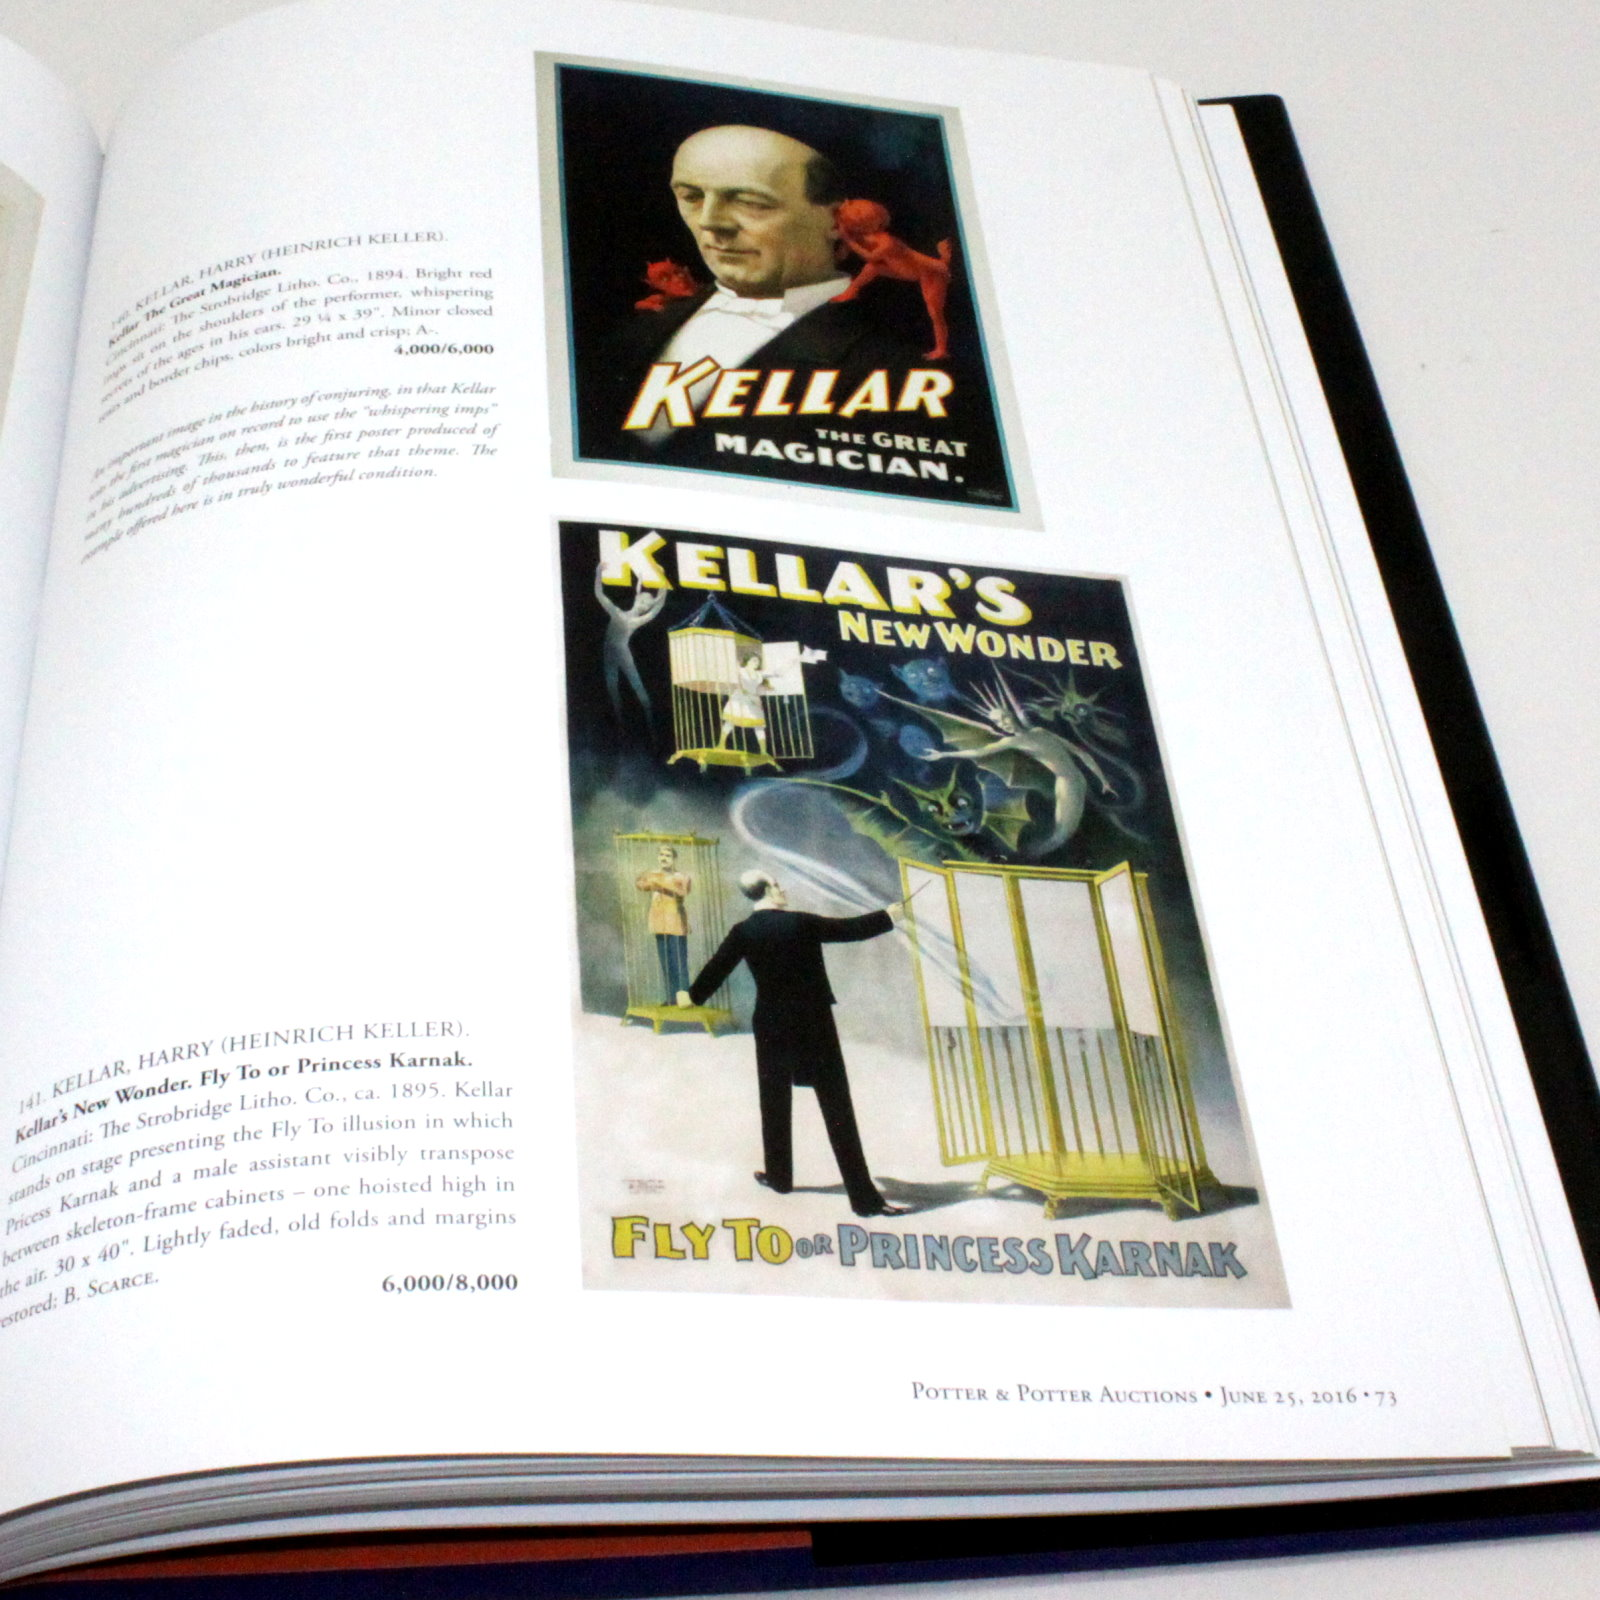 Book The Nielsen Collection Part I The Golden Age of Magic Posters